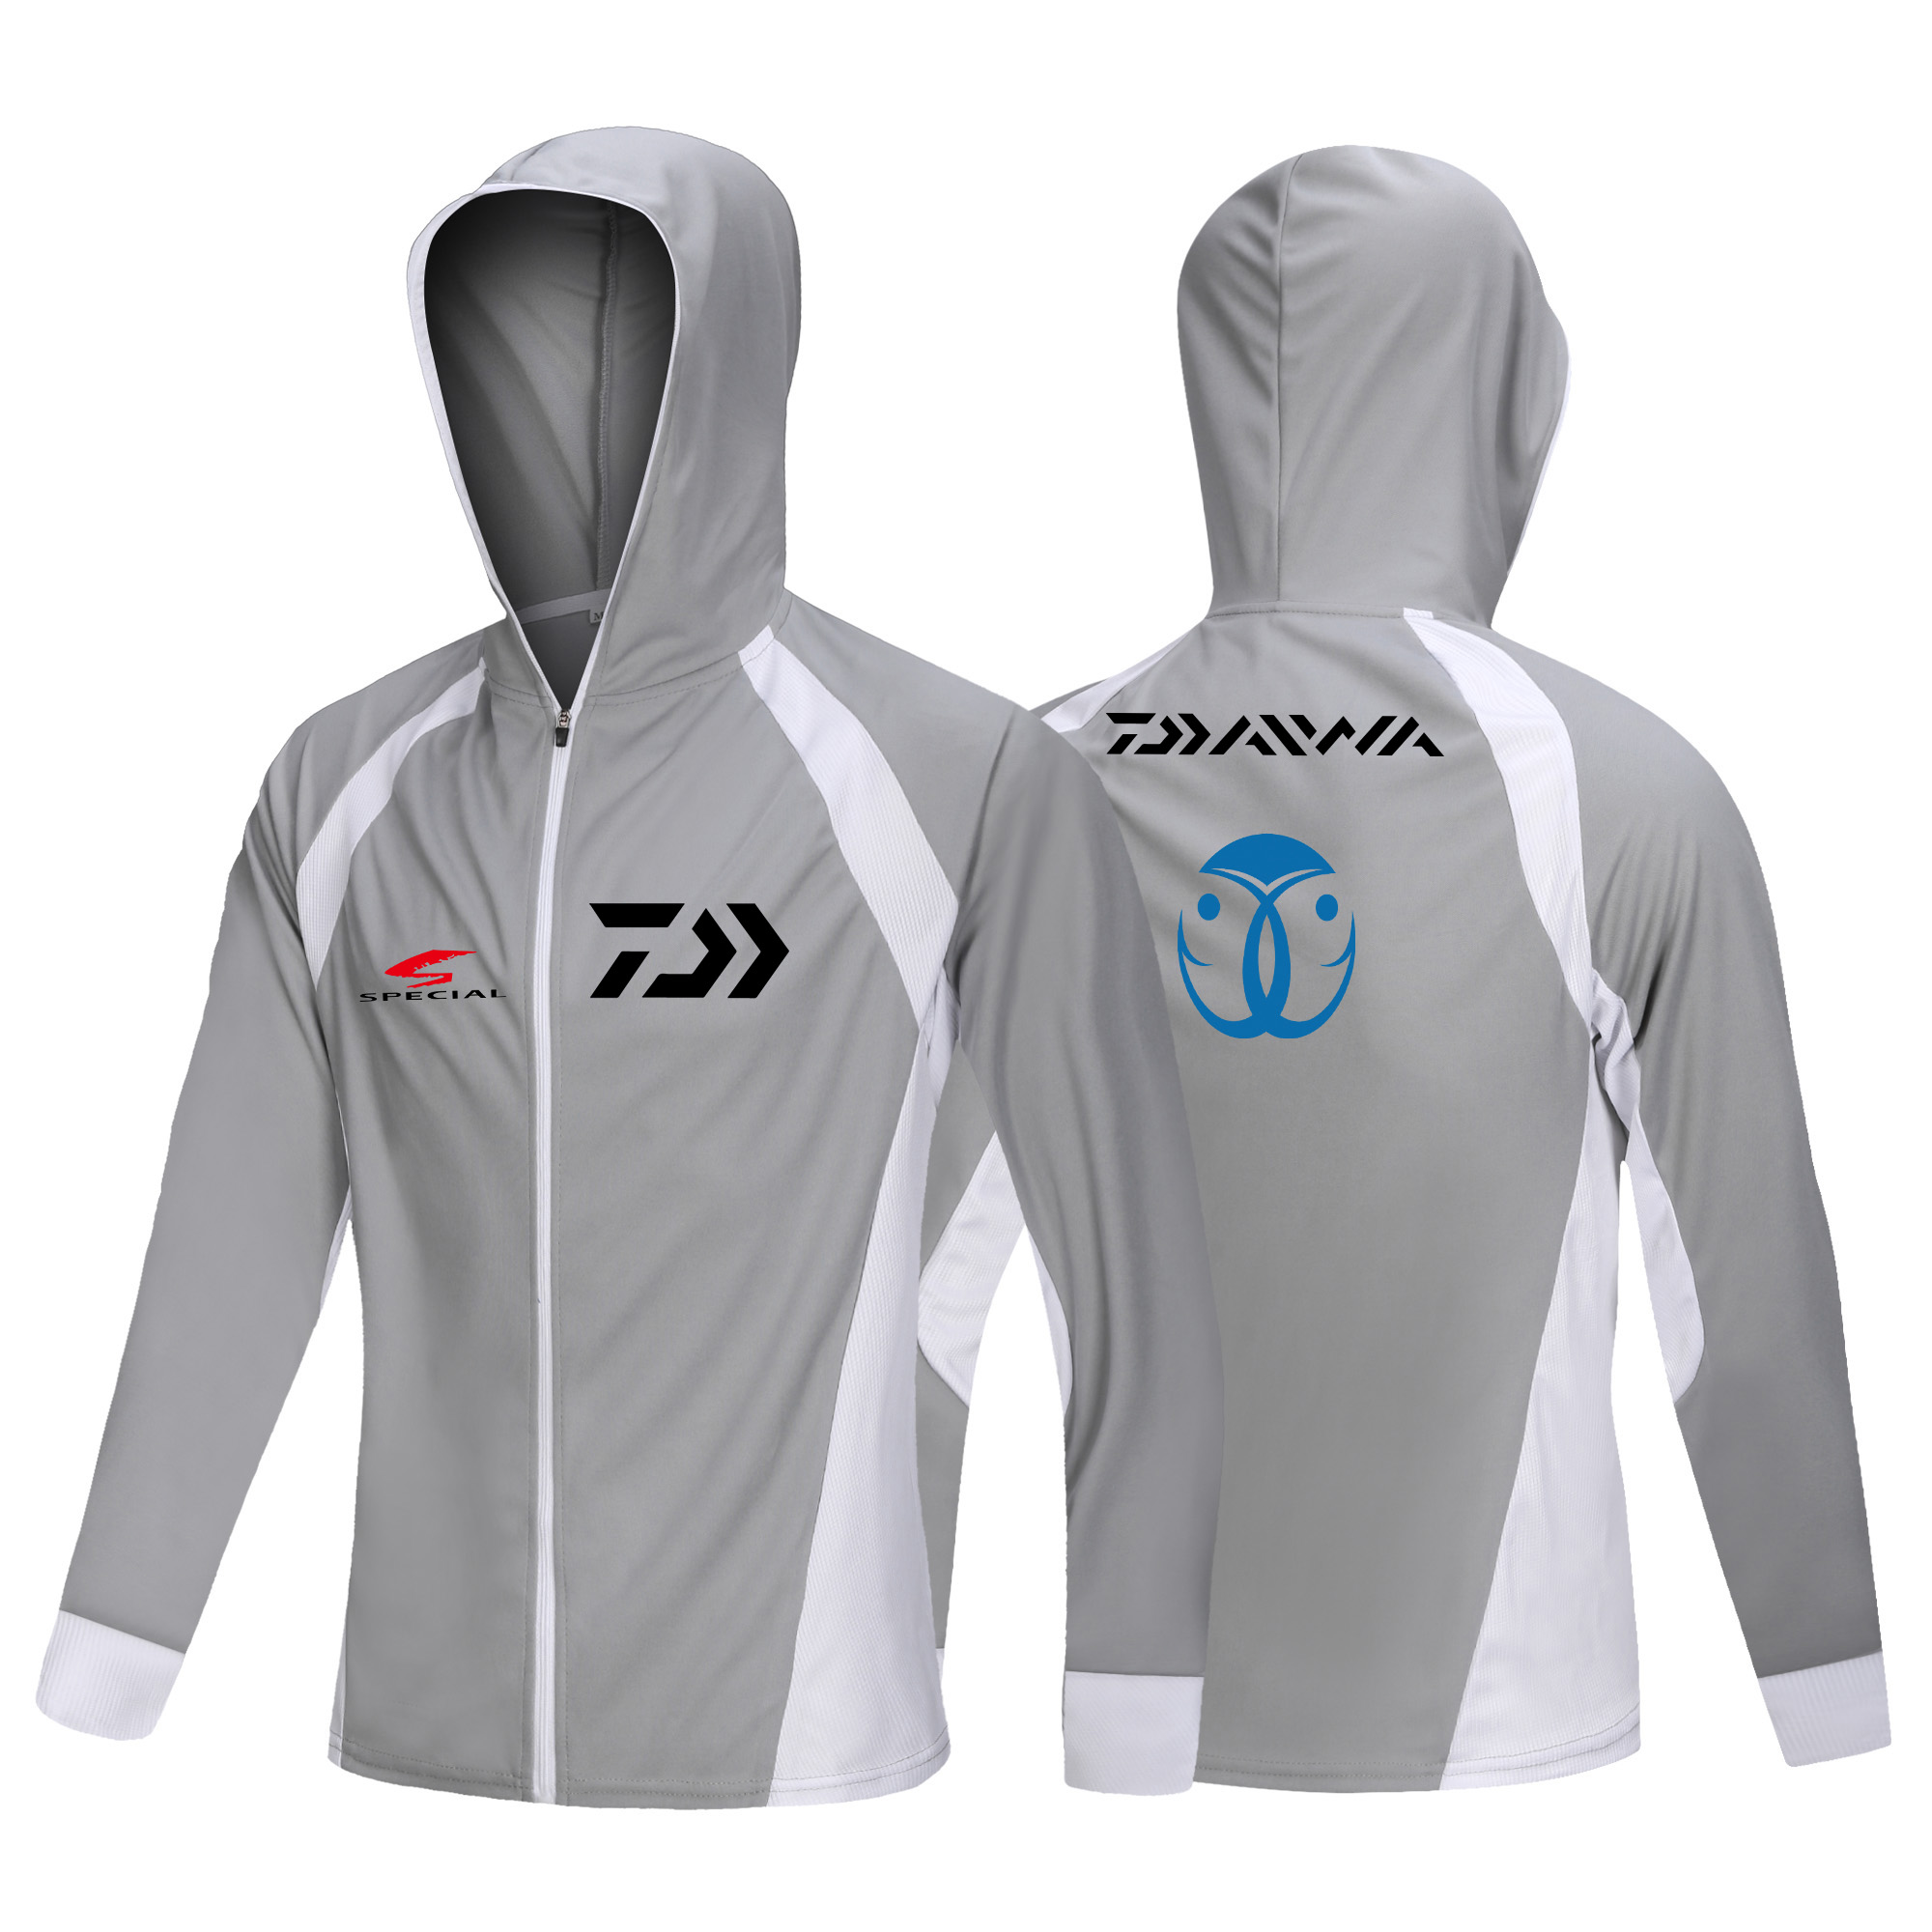 Daiwa Fishing Hoodie Anti-UV Sunscreen Sun Protection Face Neck Breathable Fishing Shirt Long Sleeve Quick Dry Fishing Clothing